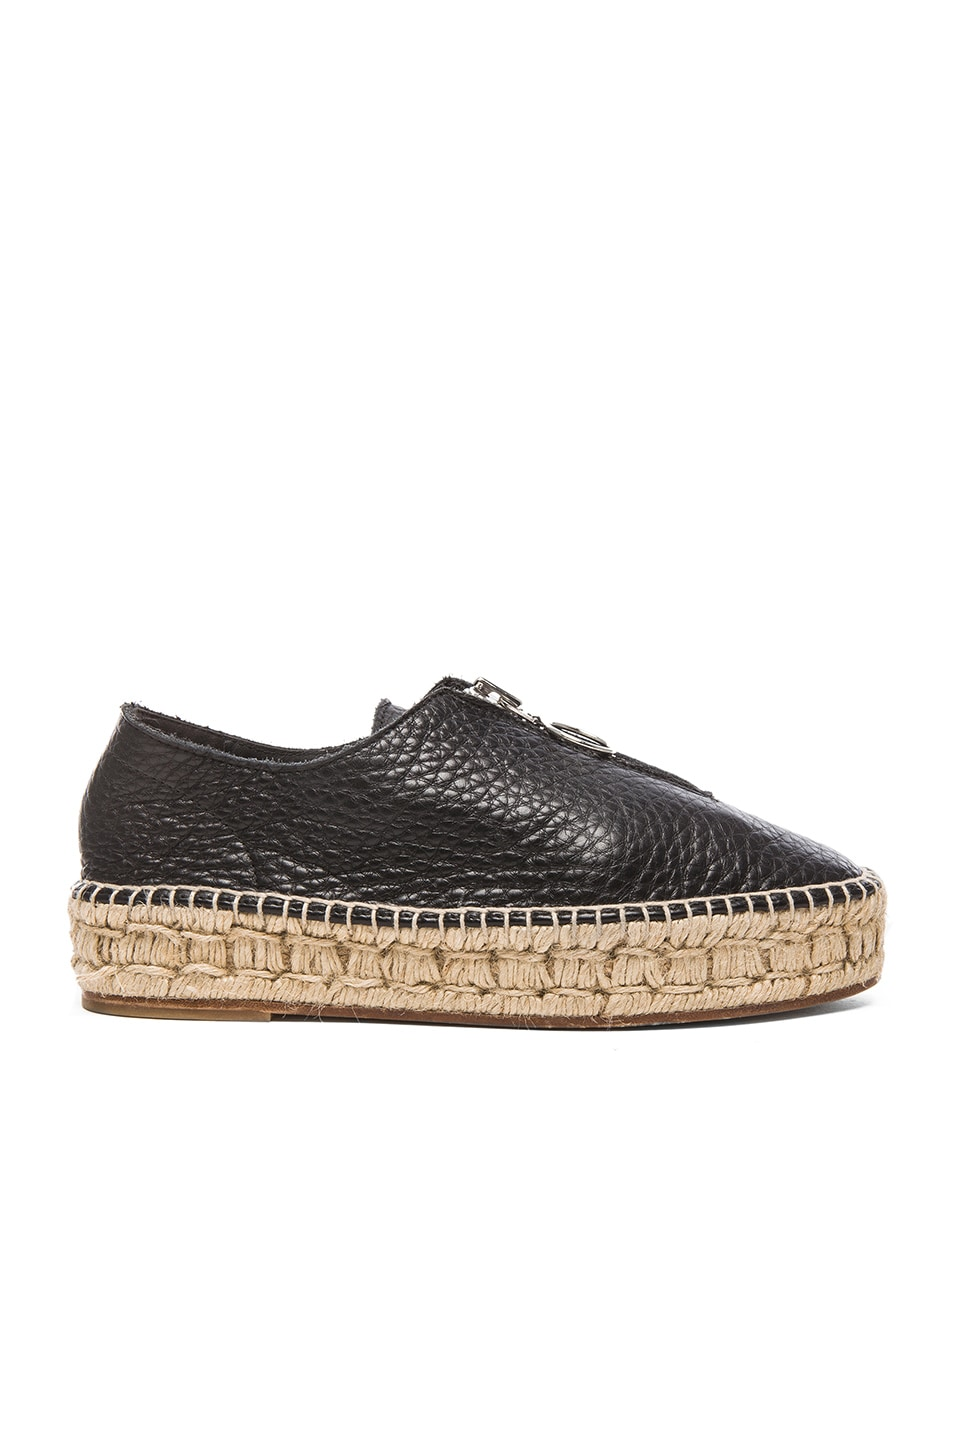 Image 1 of Alexander Wang Devon Espadrille in Black